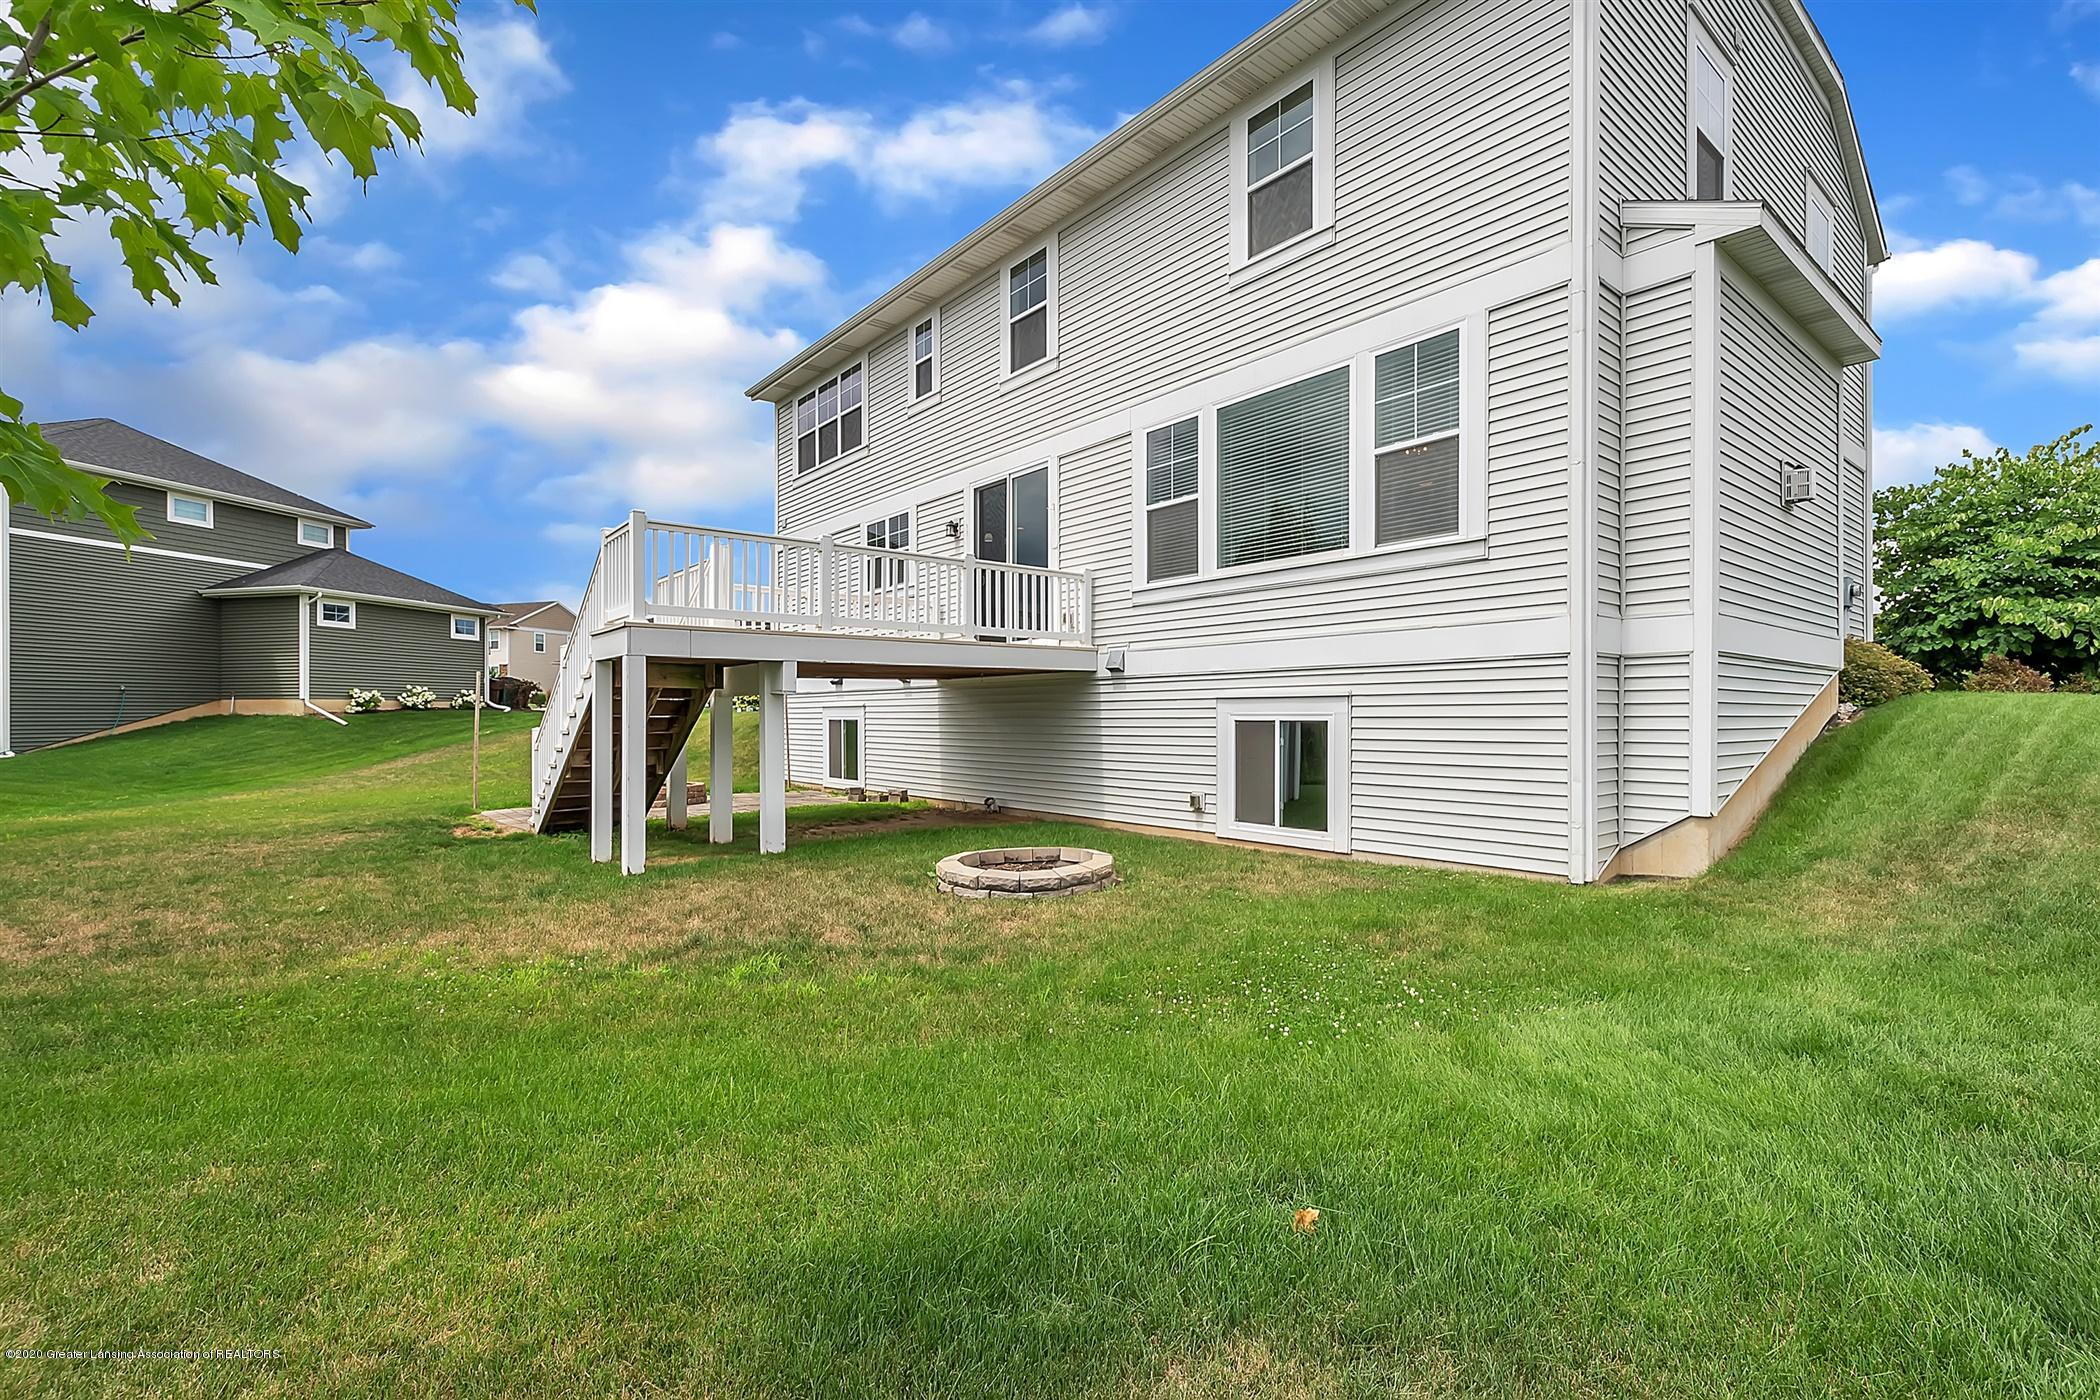 2715 Kittansett Dr - 51-2715-Kittansett-Dr-WindowStill-R - 52